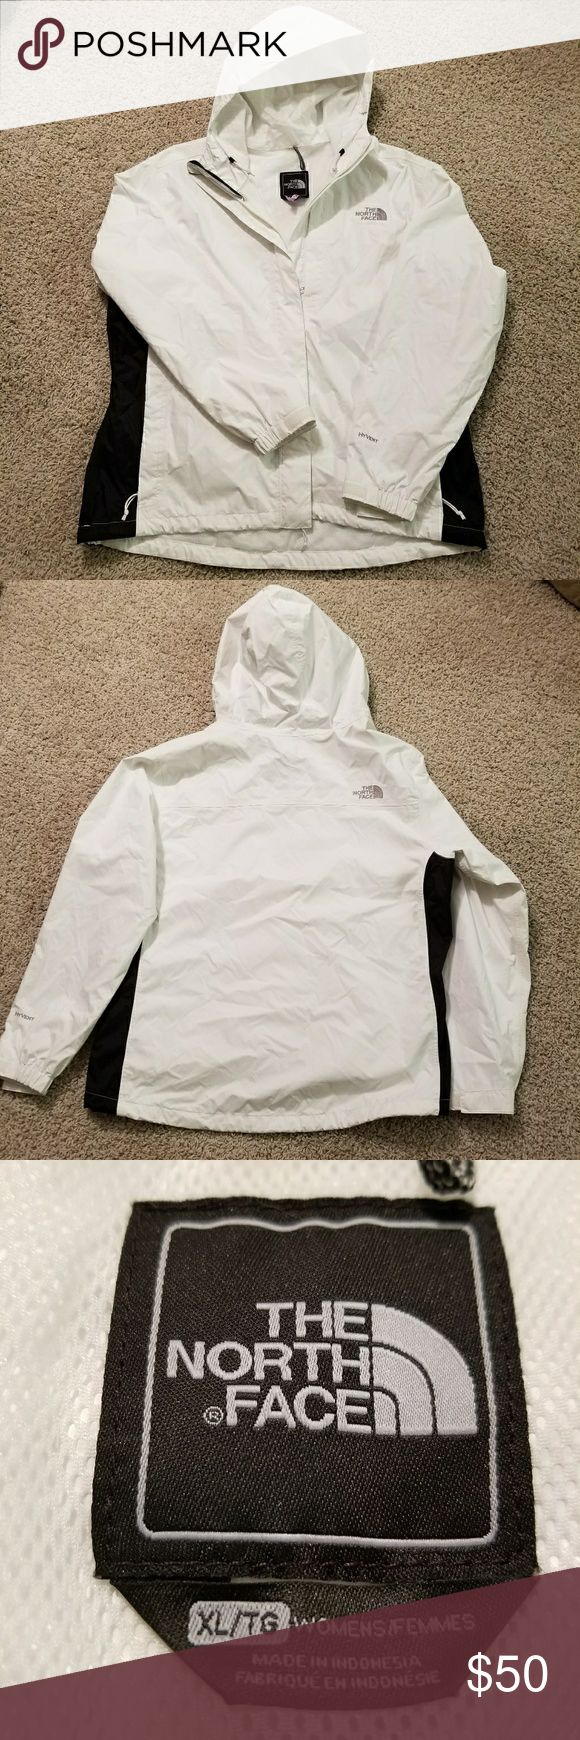 The Northface white with black rain jacket sz XL For sale I have a beautiful Nortface rain jacket in excellent condition. It's lined white inside. It's lightweight and perfect for those windy or rainy days.  $50 The North Face Jackets & Coats Utility Jackets